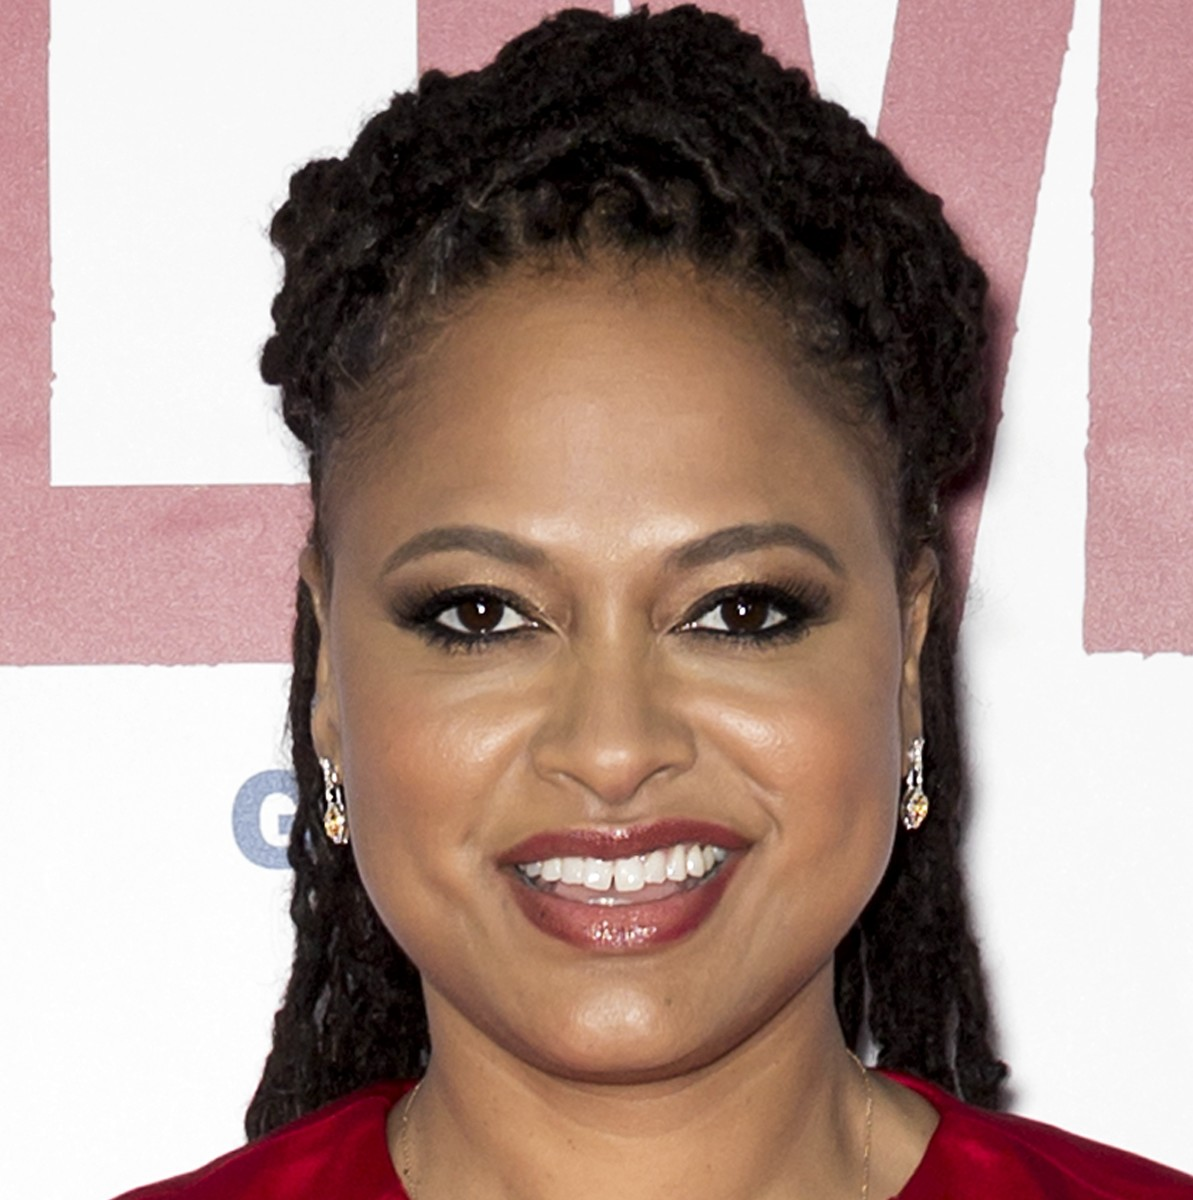 Famous People Named Ava with regard to ava duvernay - documentarian, screenwriter, director - biography